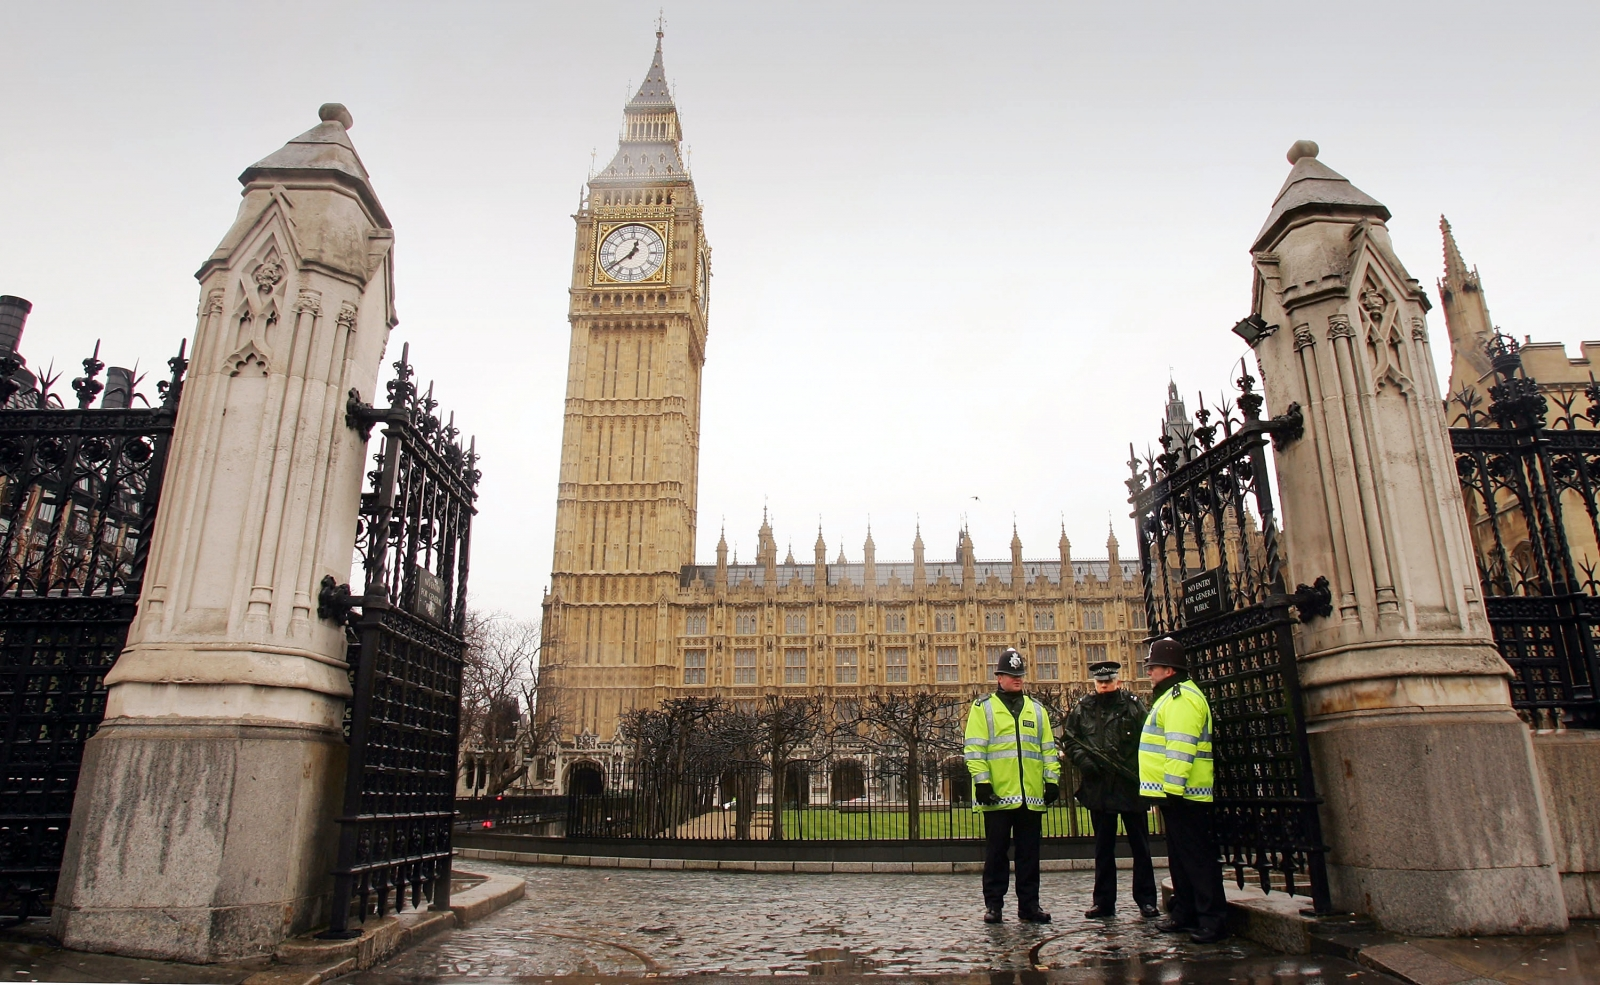 British lawmakers hit by 'sustained' cyber attack